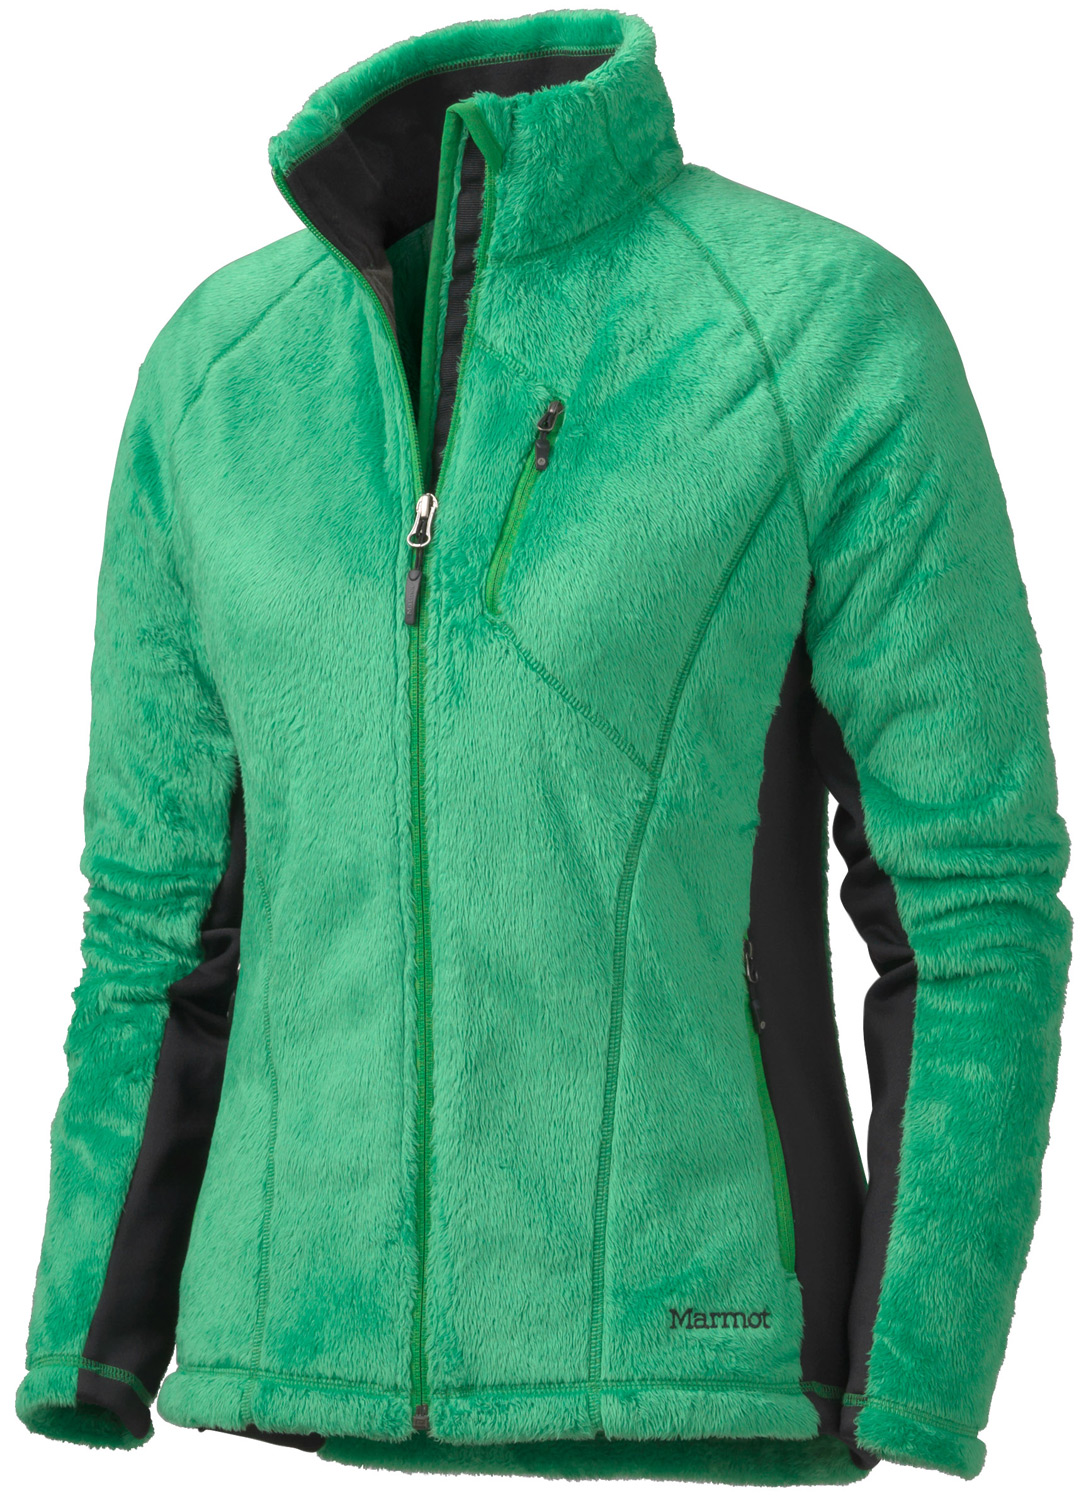 Marmot Solar Flair Fleece Fern - $100.95